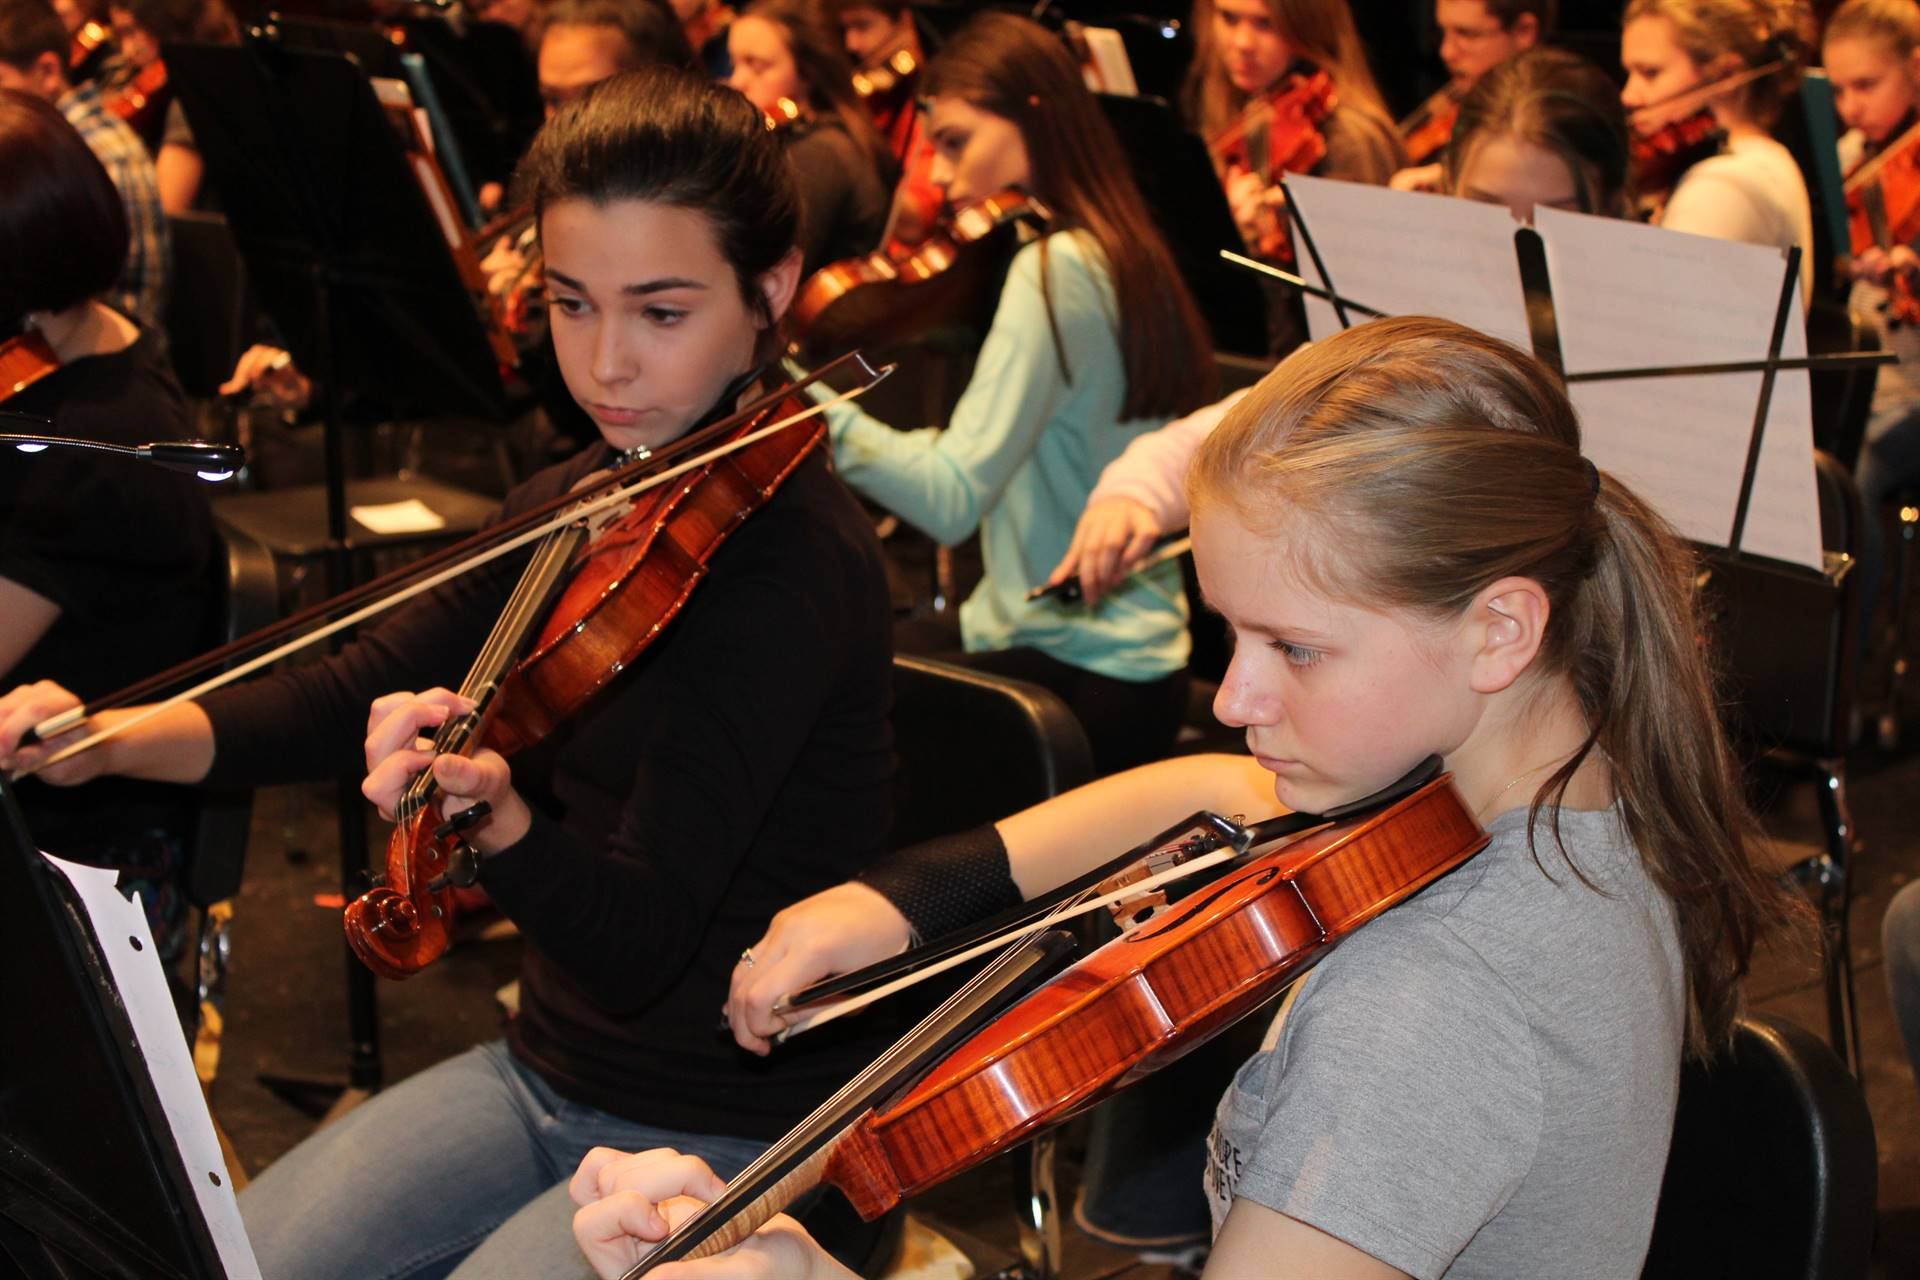 Rehearsing for the Electrify Your Strings concert